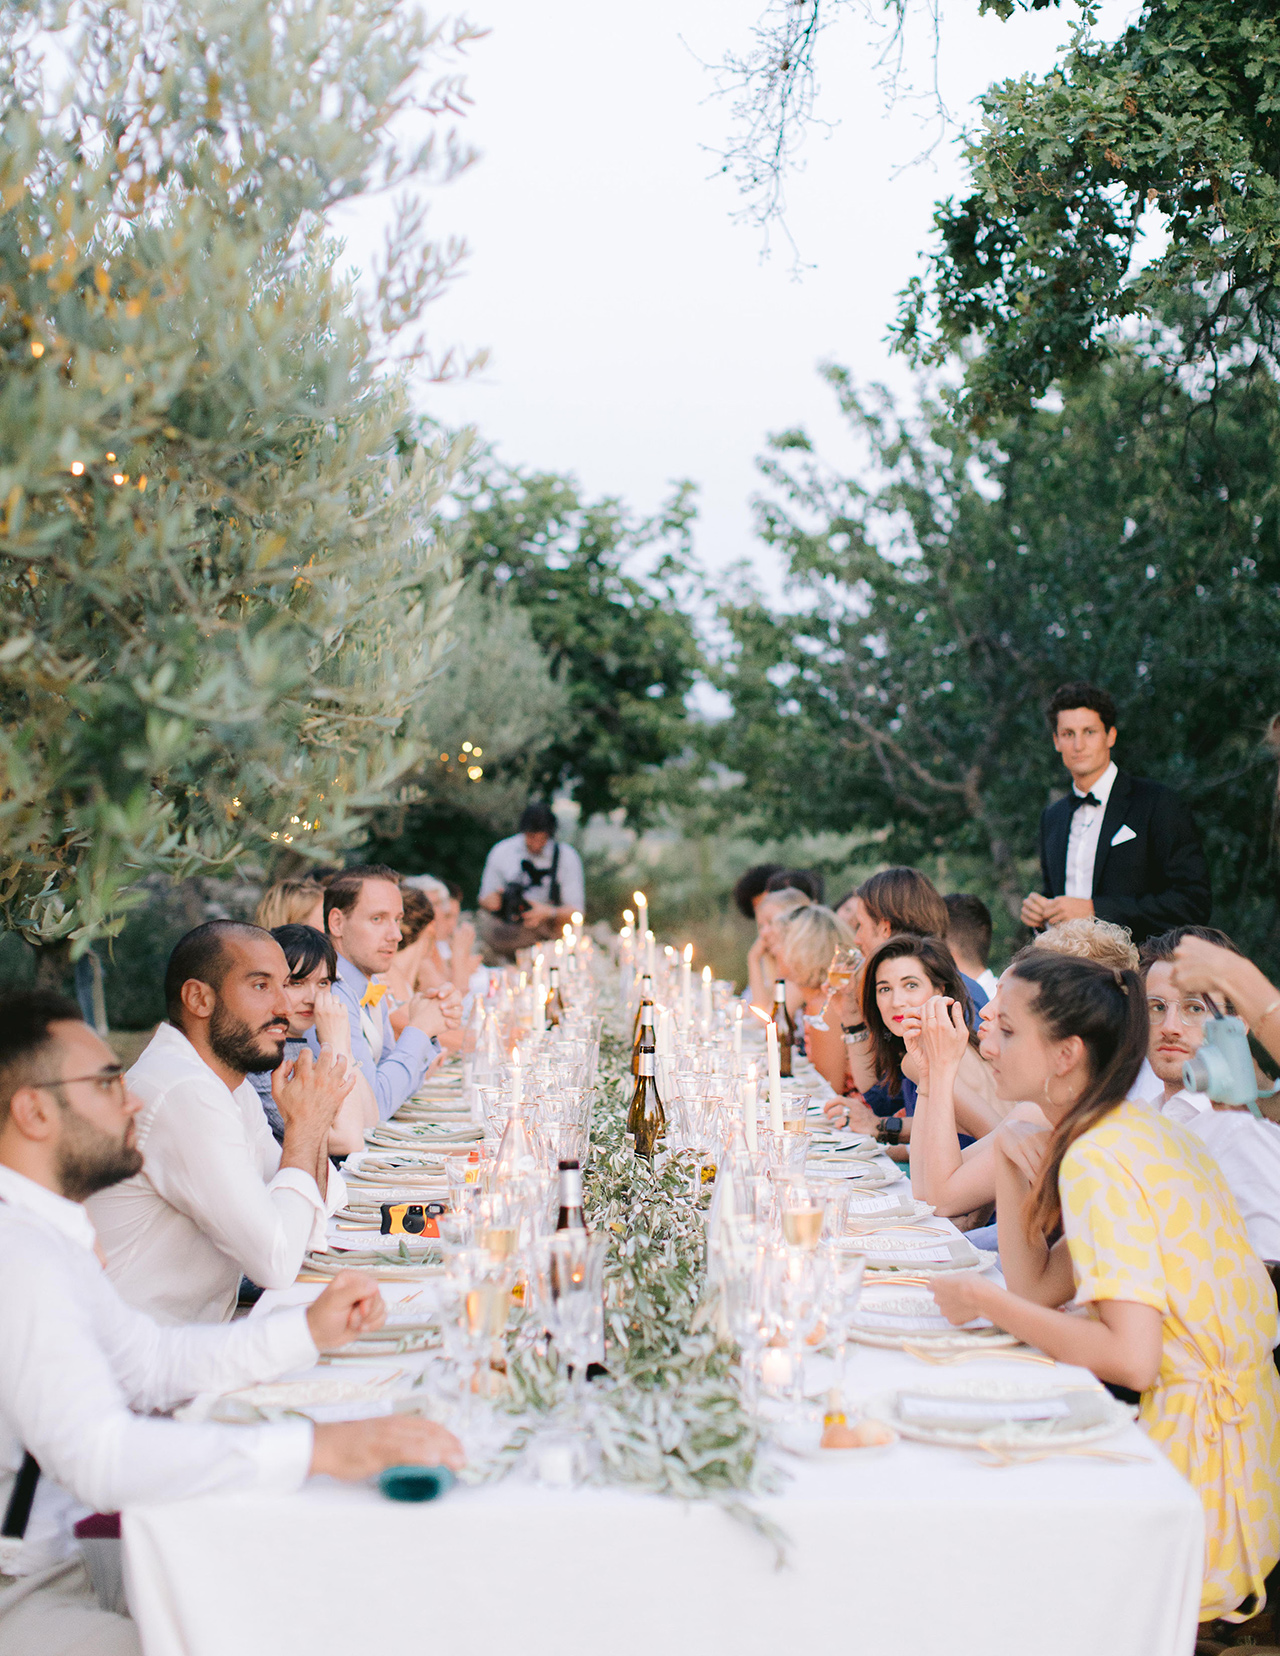 wedding reception outdoor diner party white olive branch table setting